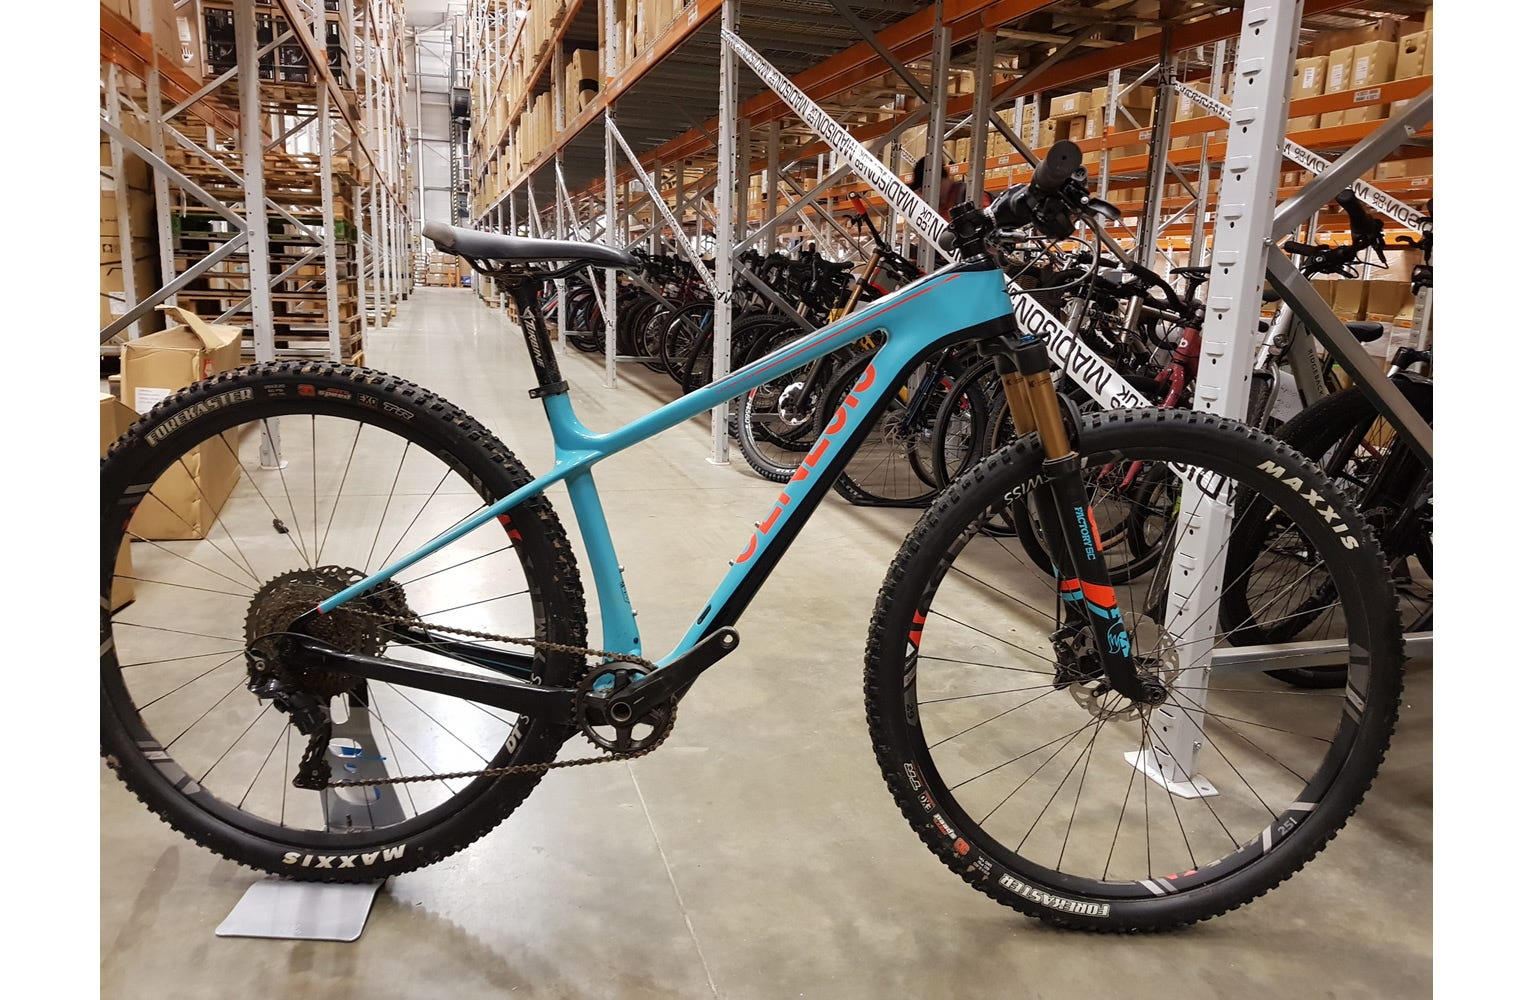 Genesis 2018 Mantle 30 XC Carbon Race md X SAMPLE BIKE (Used)